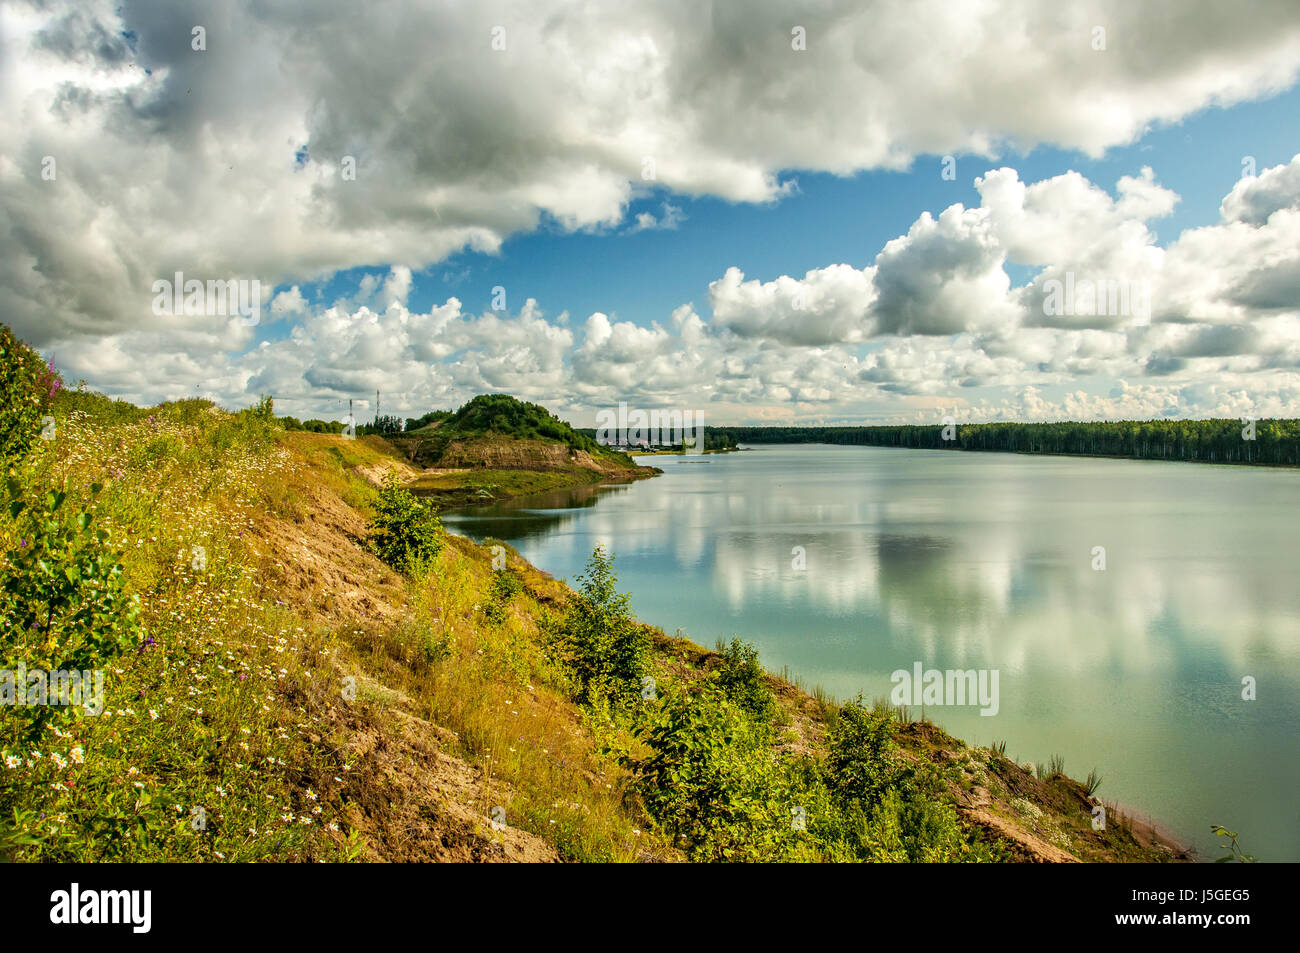 Summer cloudy day on the shore of the quarry. - Stock Image